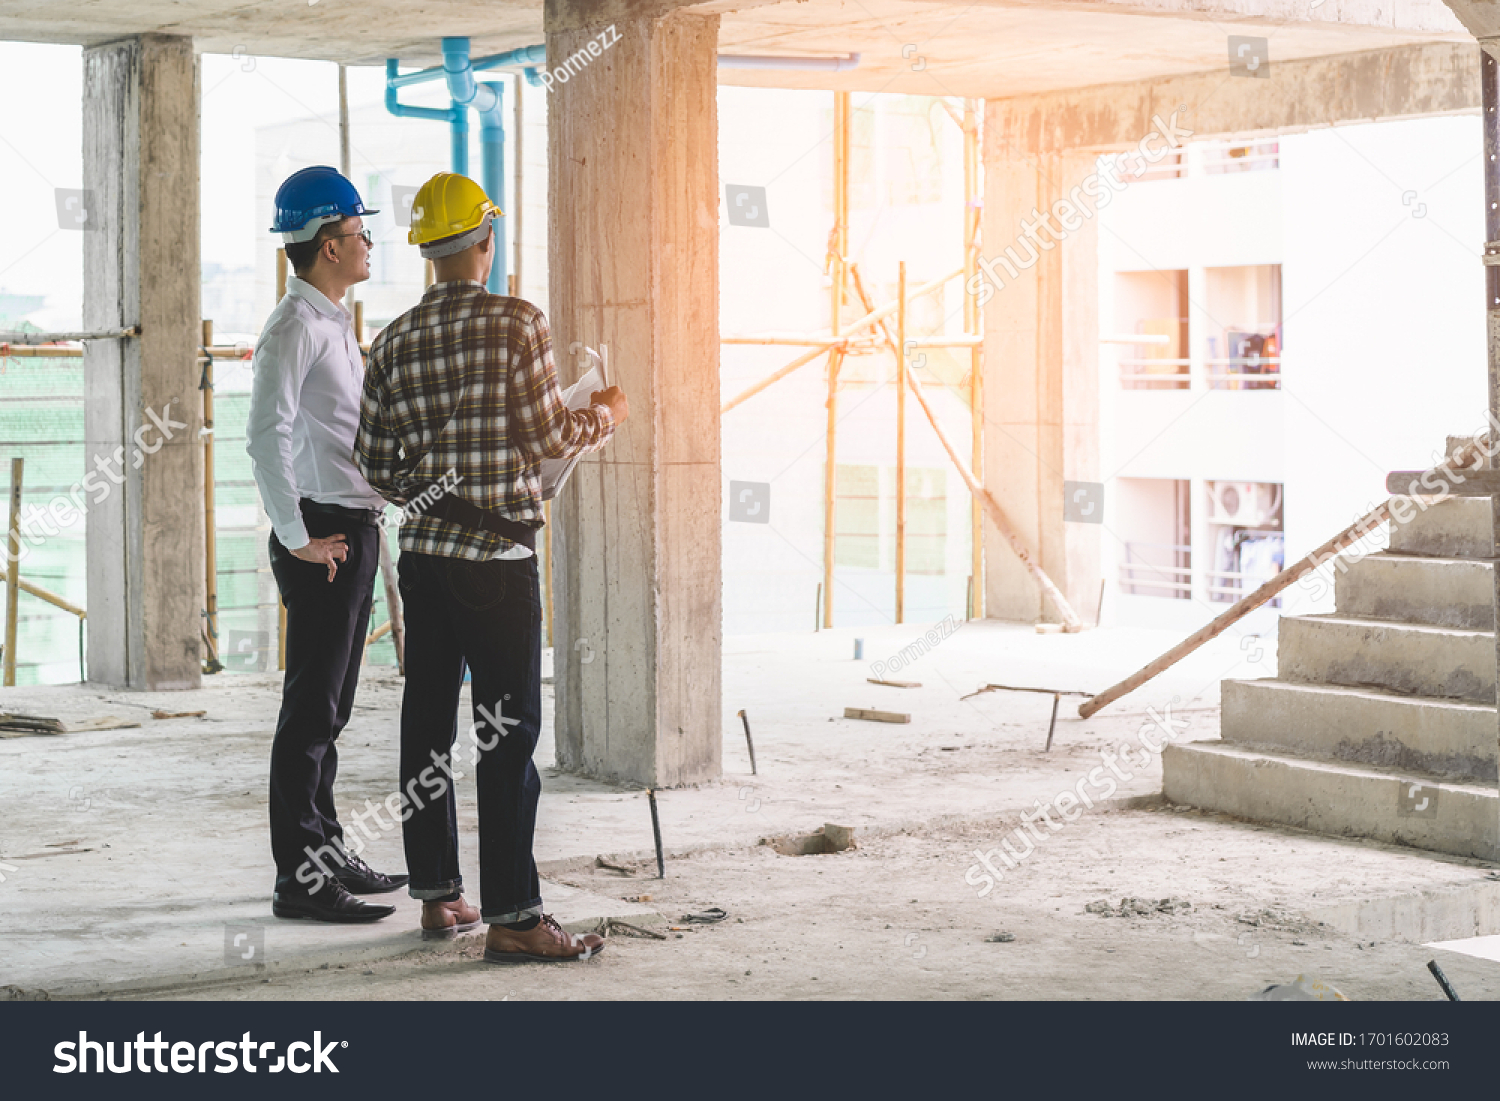 Asian contractor and engineer inspecting material in construction building. #1701602083